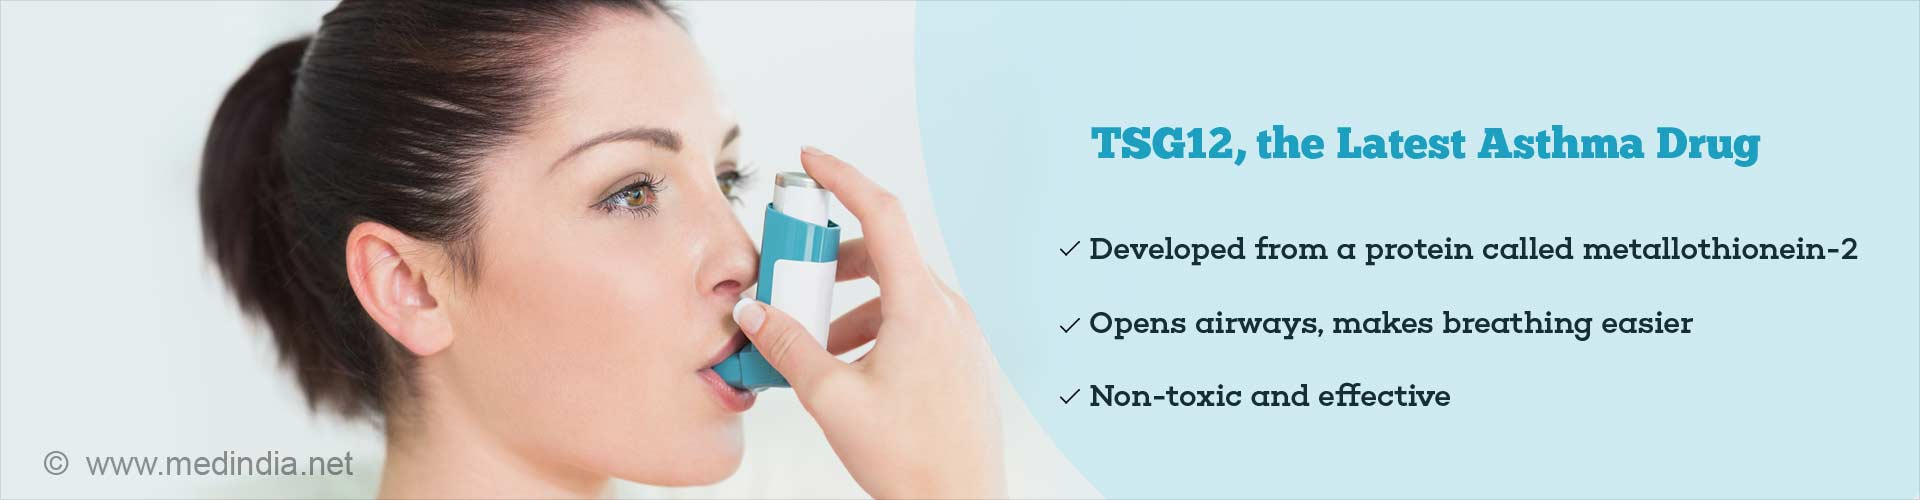 TSG12, the latest asthma drug